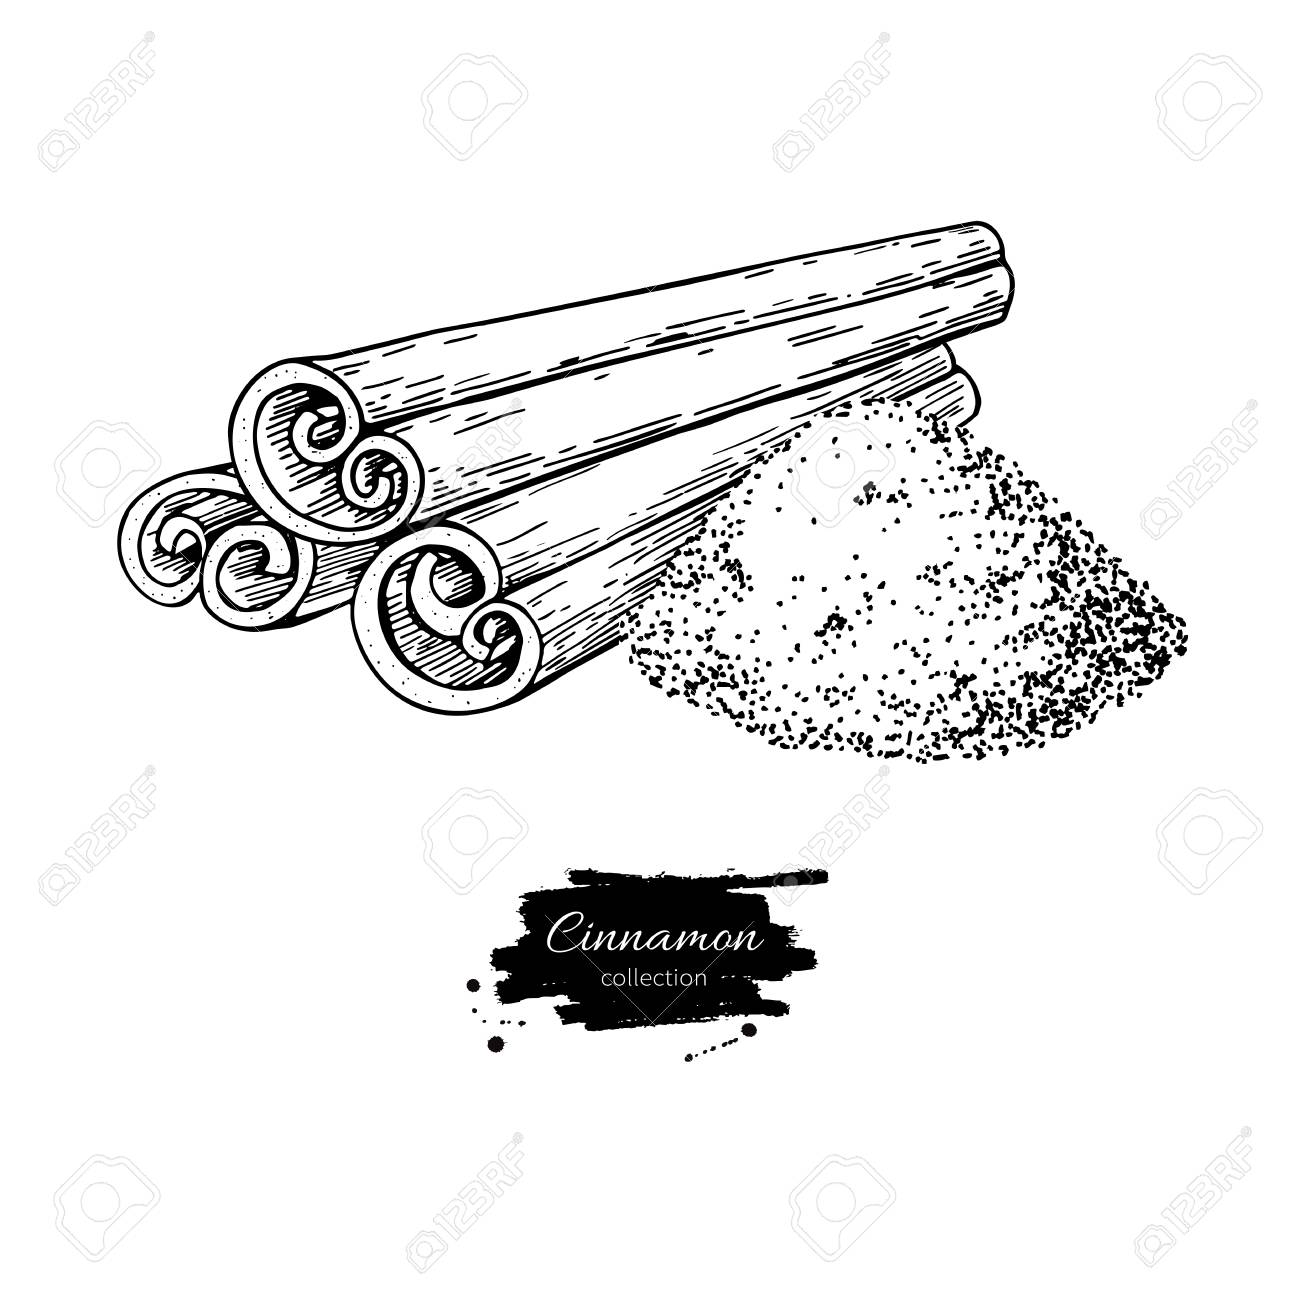 1300x1300 Cinnamon Stick And Powder Vector Drawing. Hand Drawn Sketch